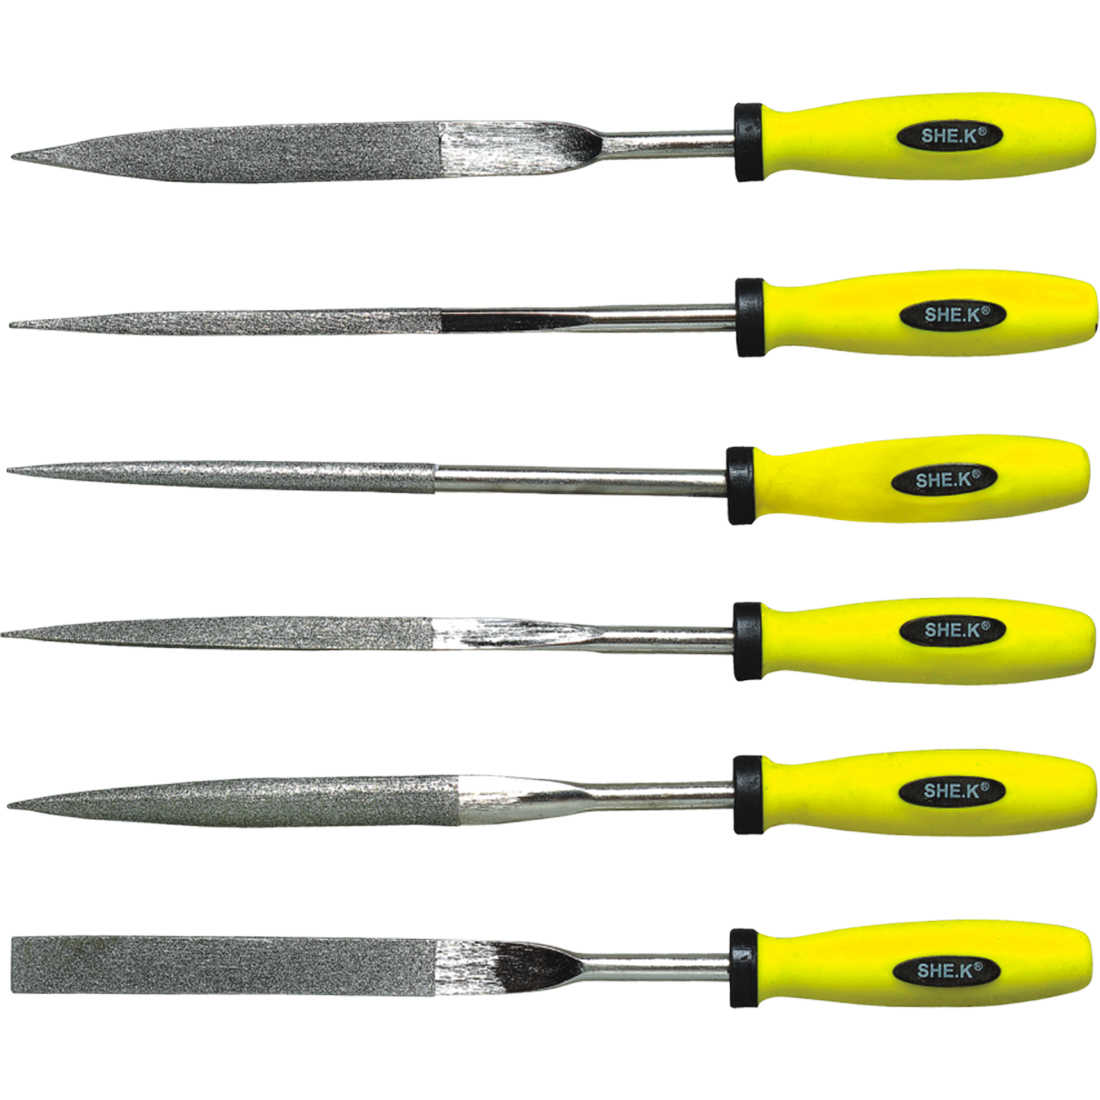 6Pcs High-end Precision Rasper Household Fine Trimming File Set - Main Silver + Yellow-Black Handle